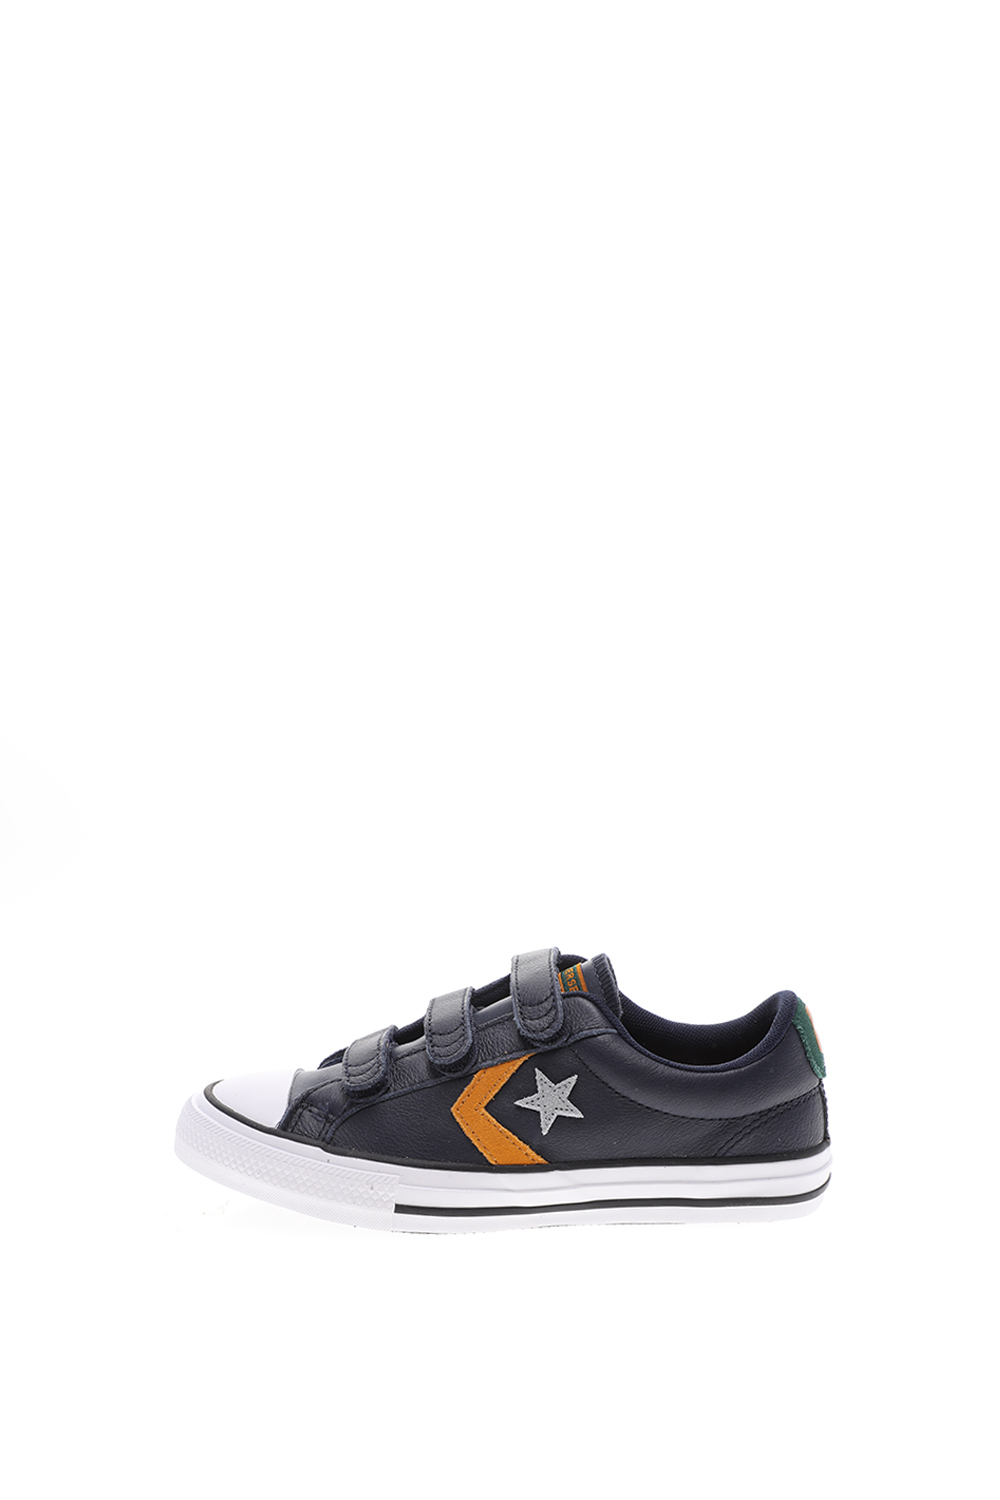 CONVERSE – Παιδικά sneakers CONVERSE Star Player 3V μπλε